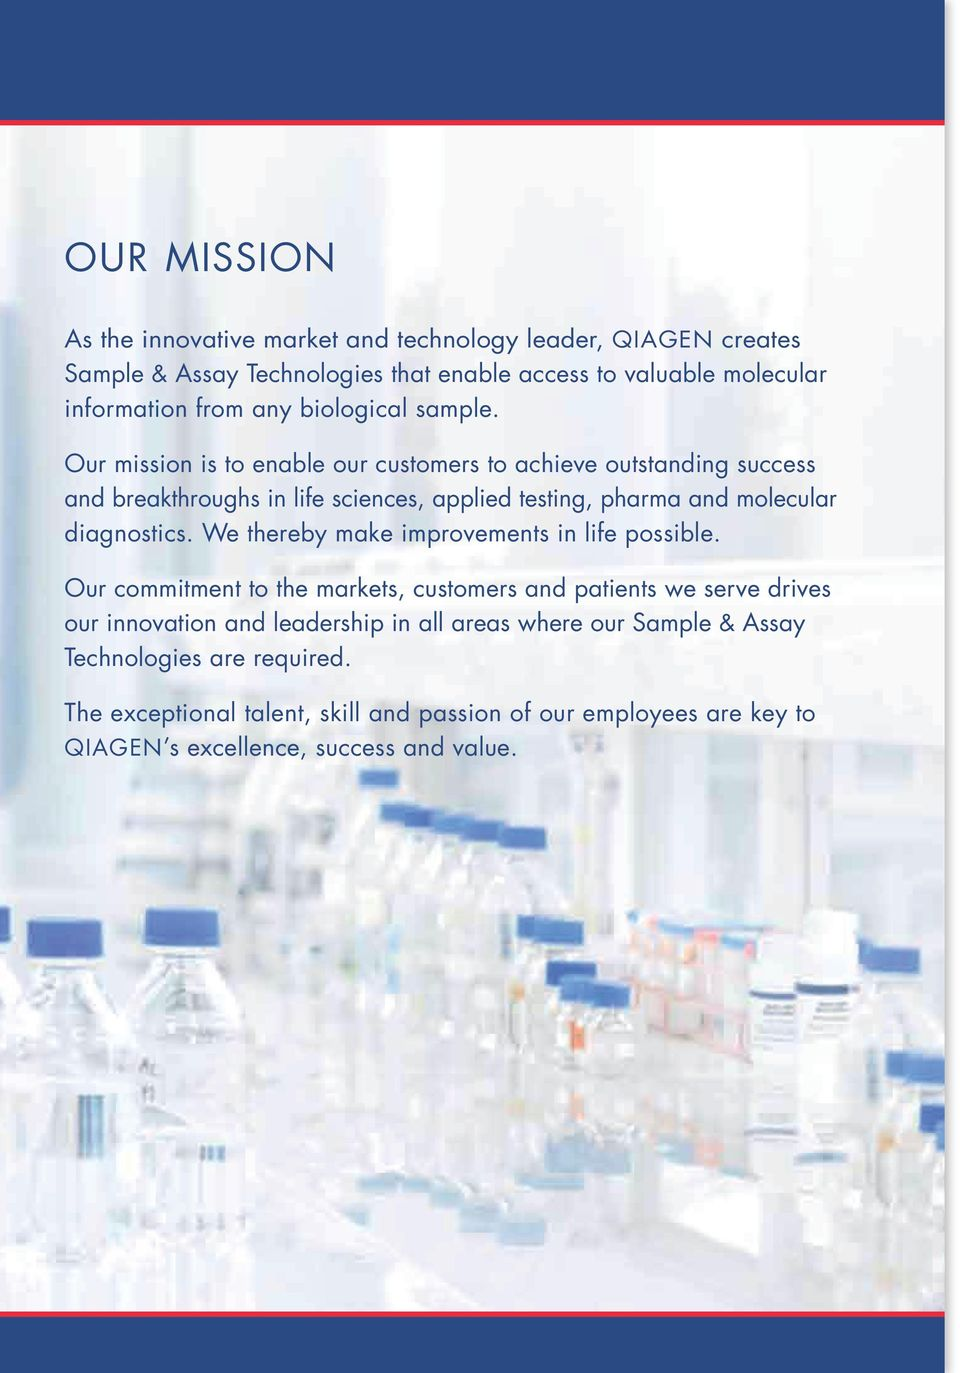 Our mission is to enable our customers to achieve outstanding success and breakthroughs in life sciences, applied testing, pharma and molecular diagnostics.